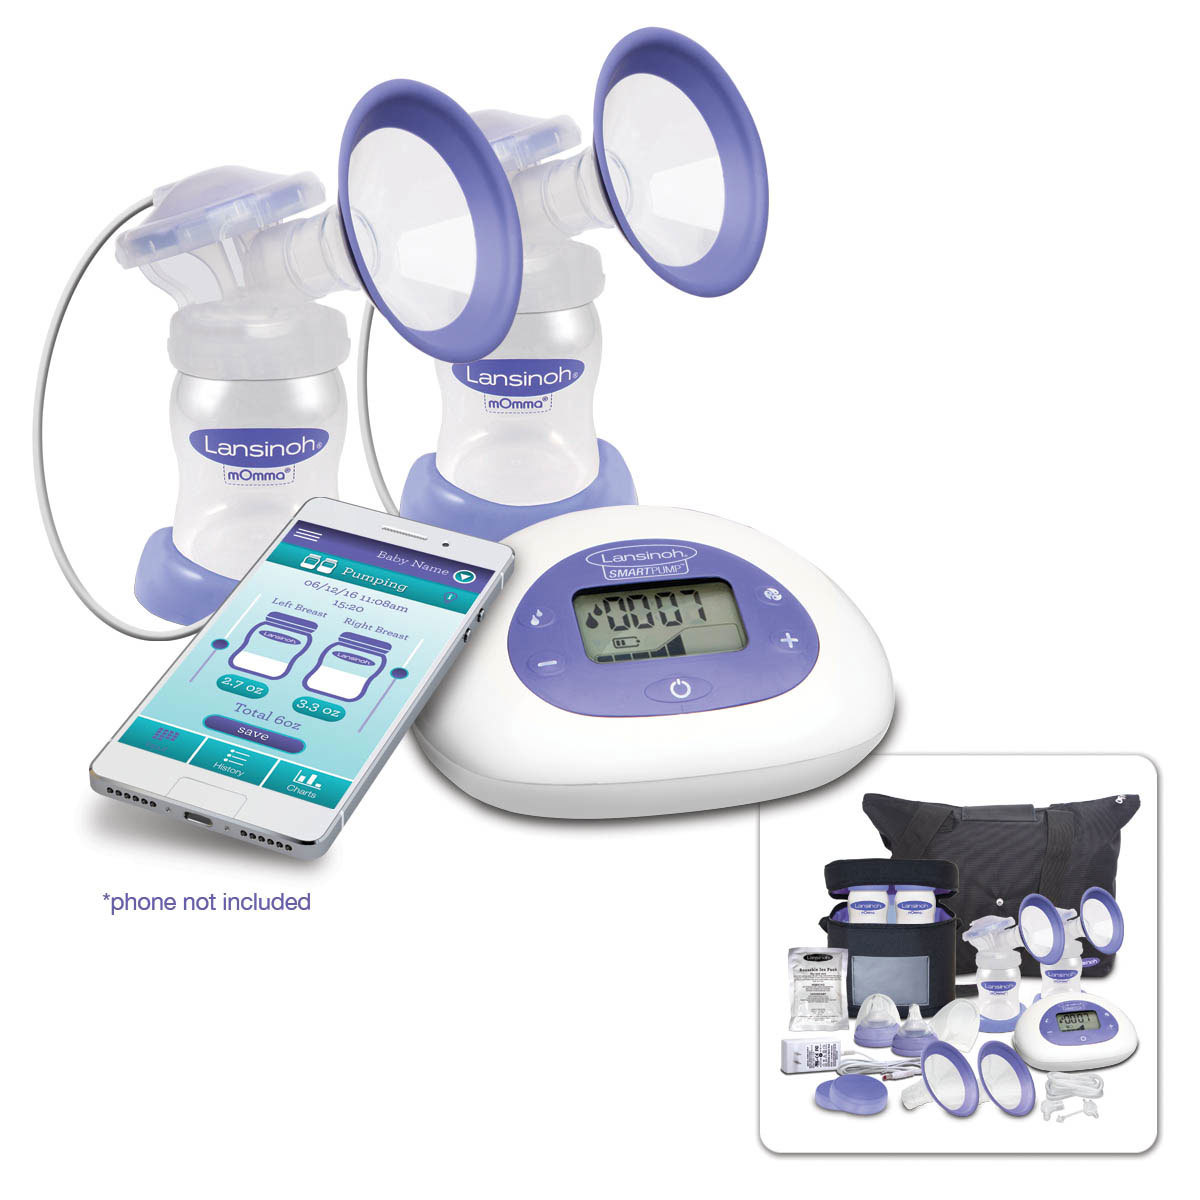 Lansinoh Launches The First Bluetooth Enabled Breast Pump